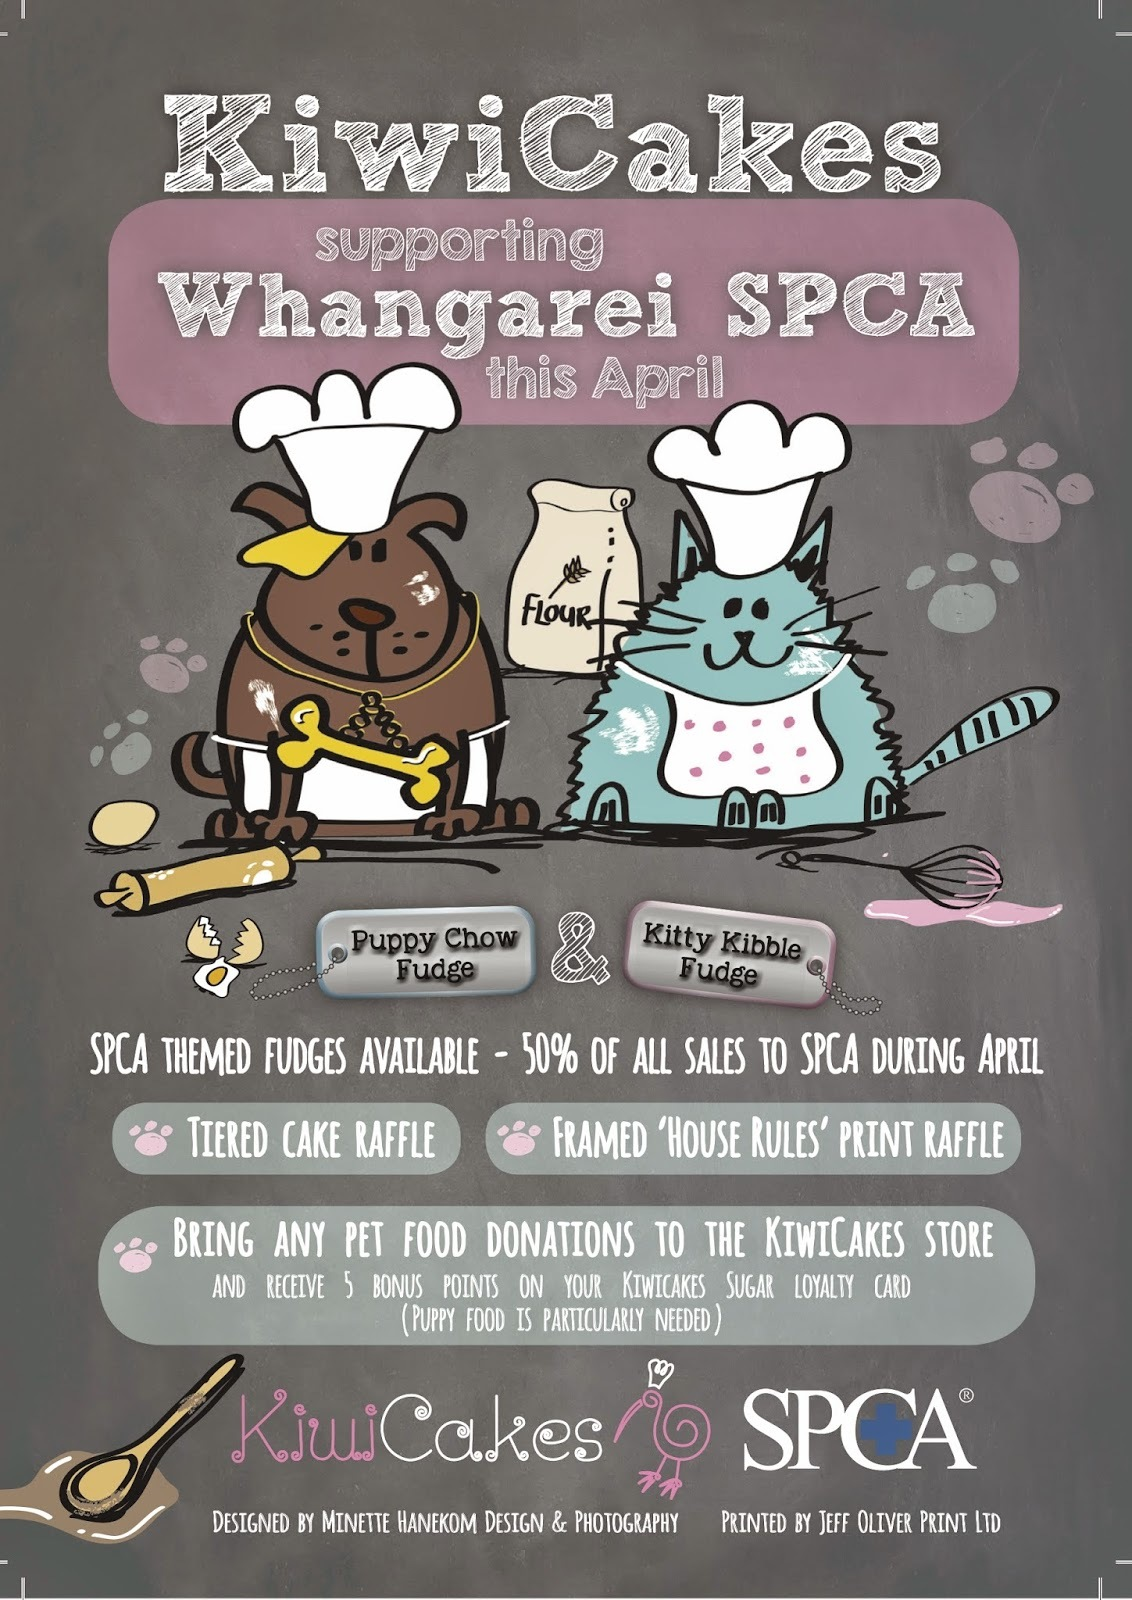 SPCA Support Month During April at Kiwicakes